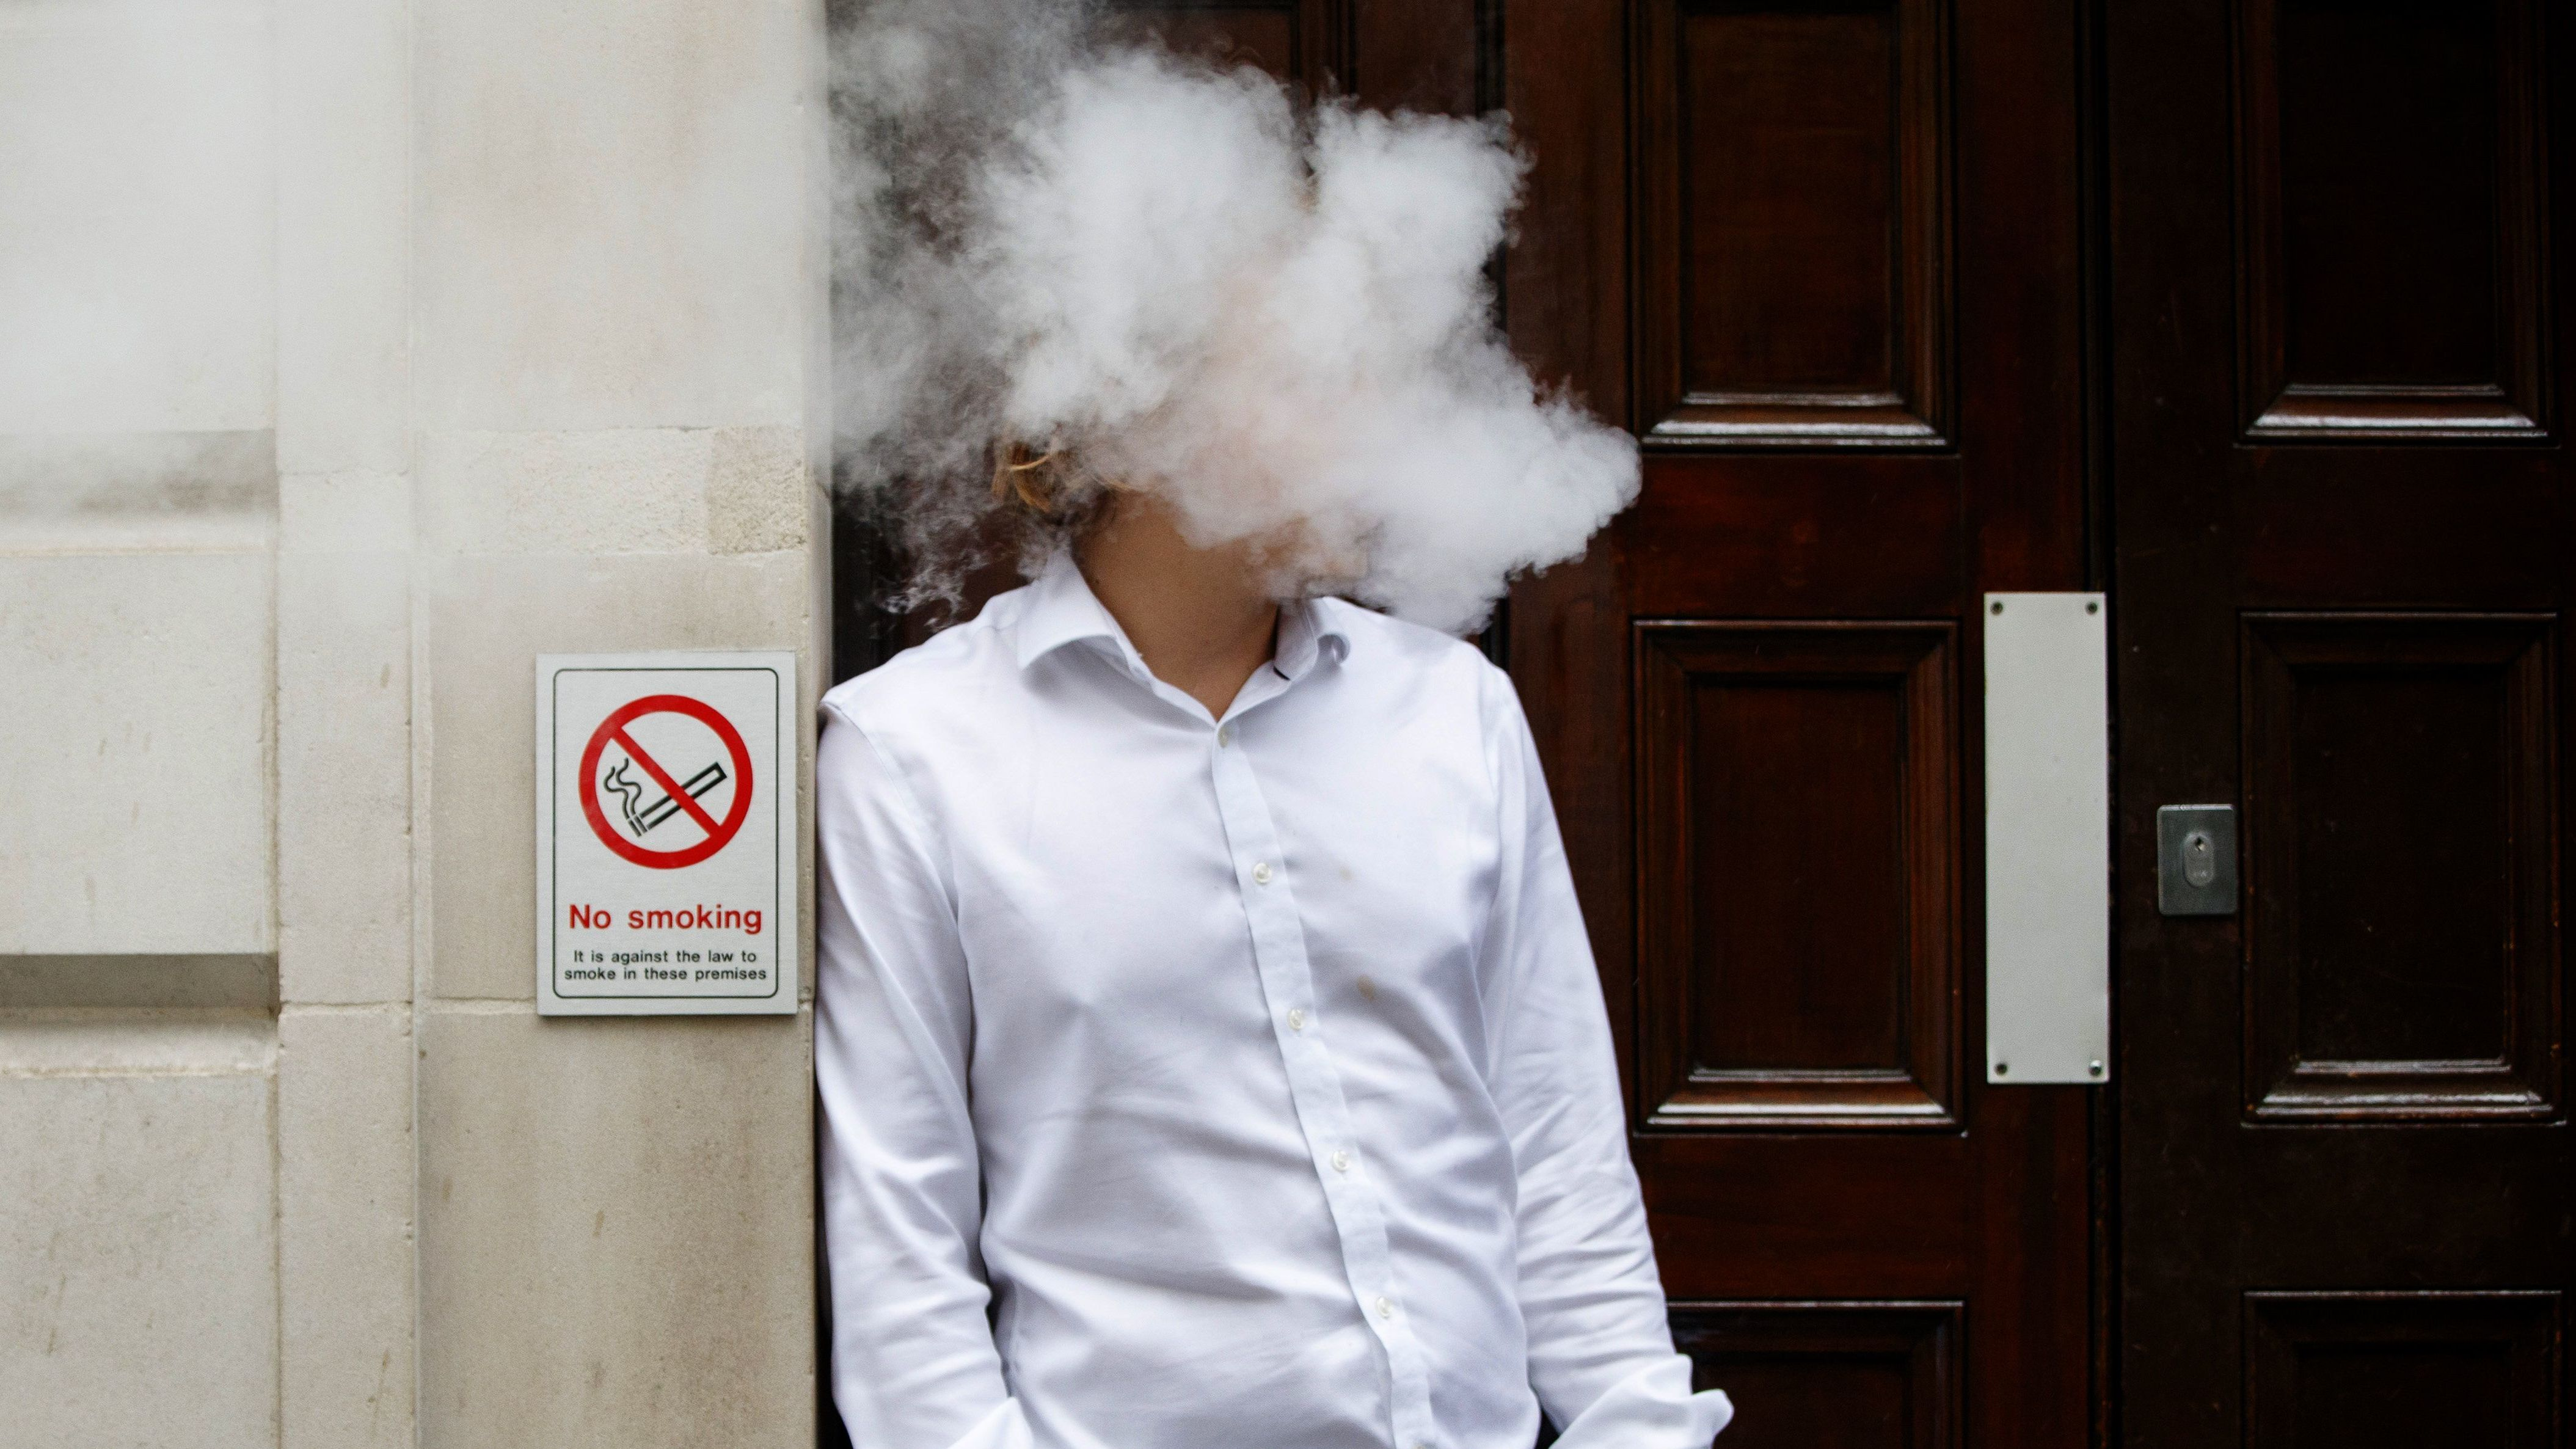 Can vapers smoke their cigarettes in public places